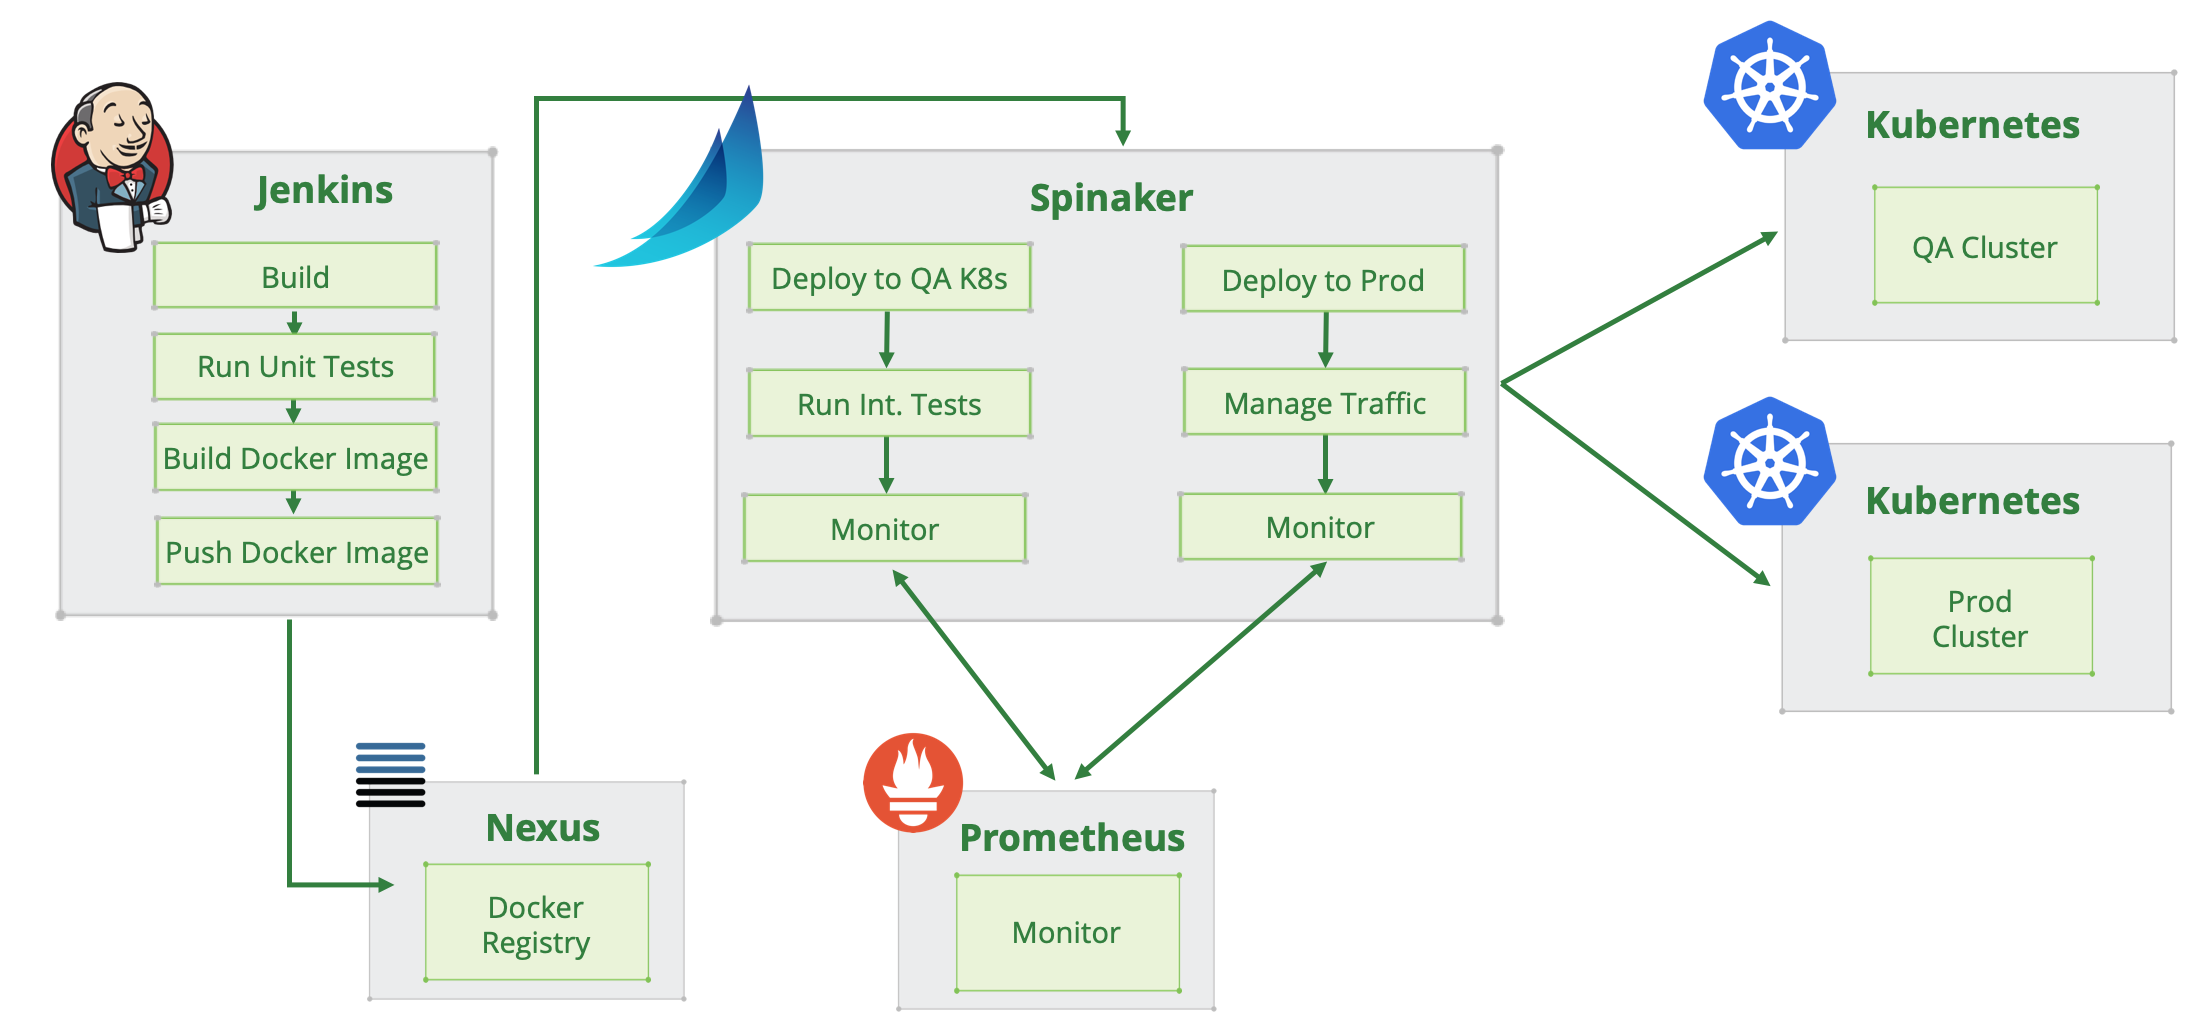 Spinnaker's role in a CI/DC workflow